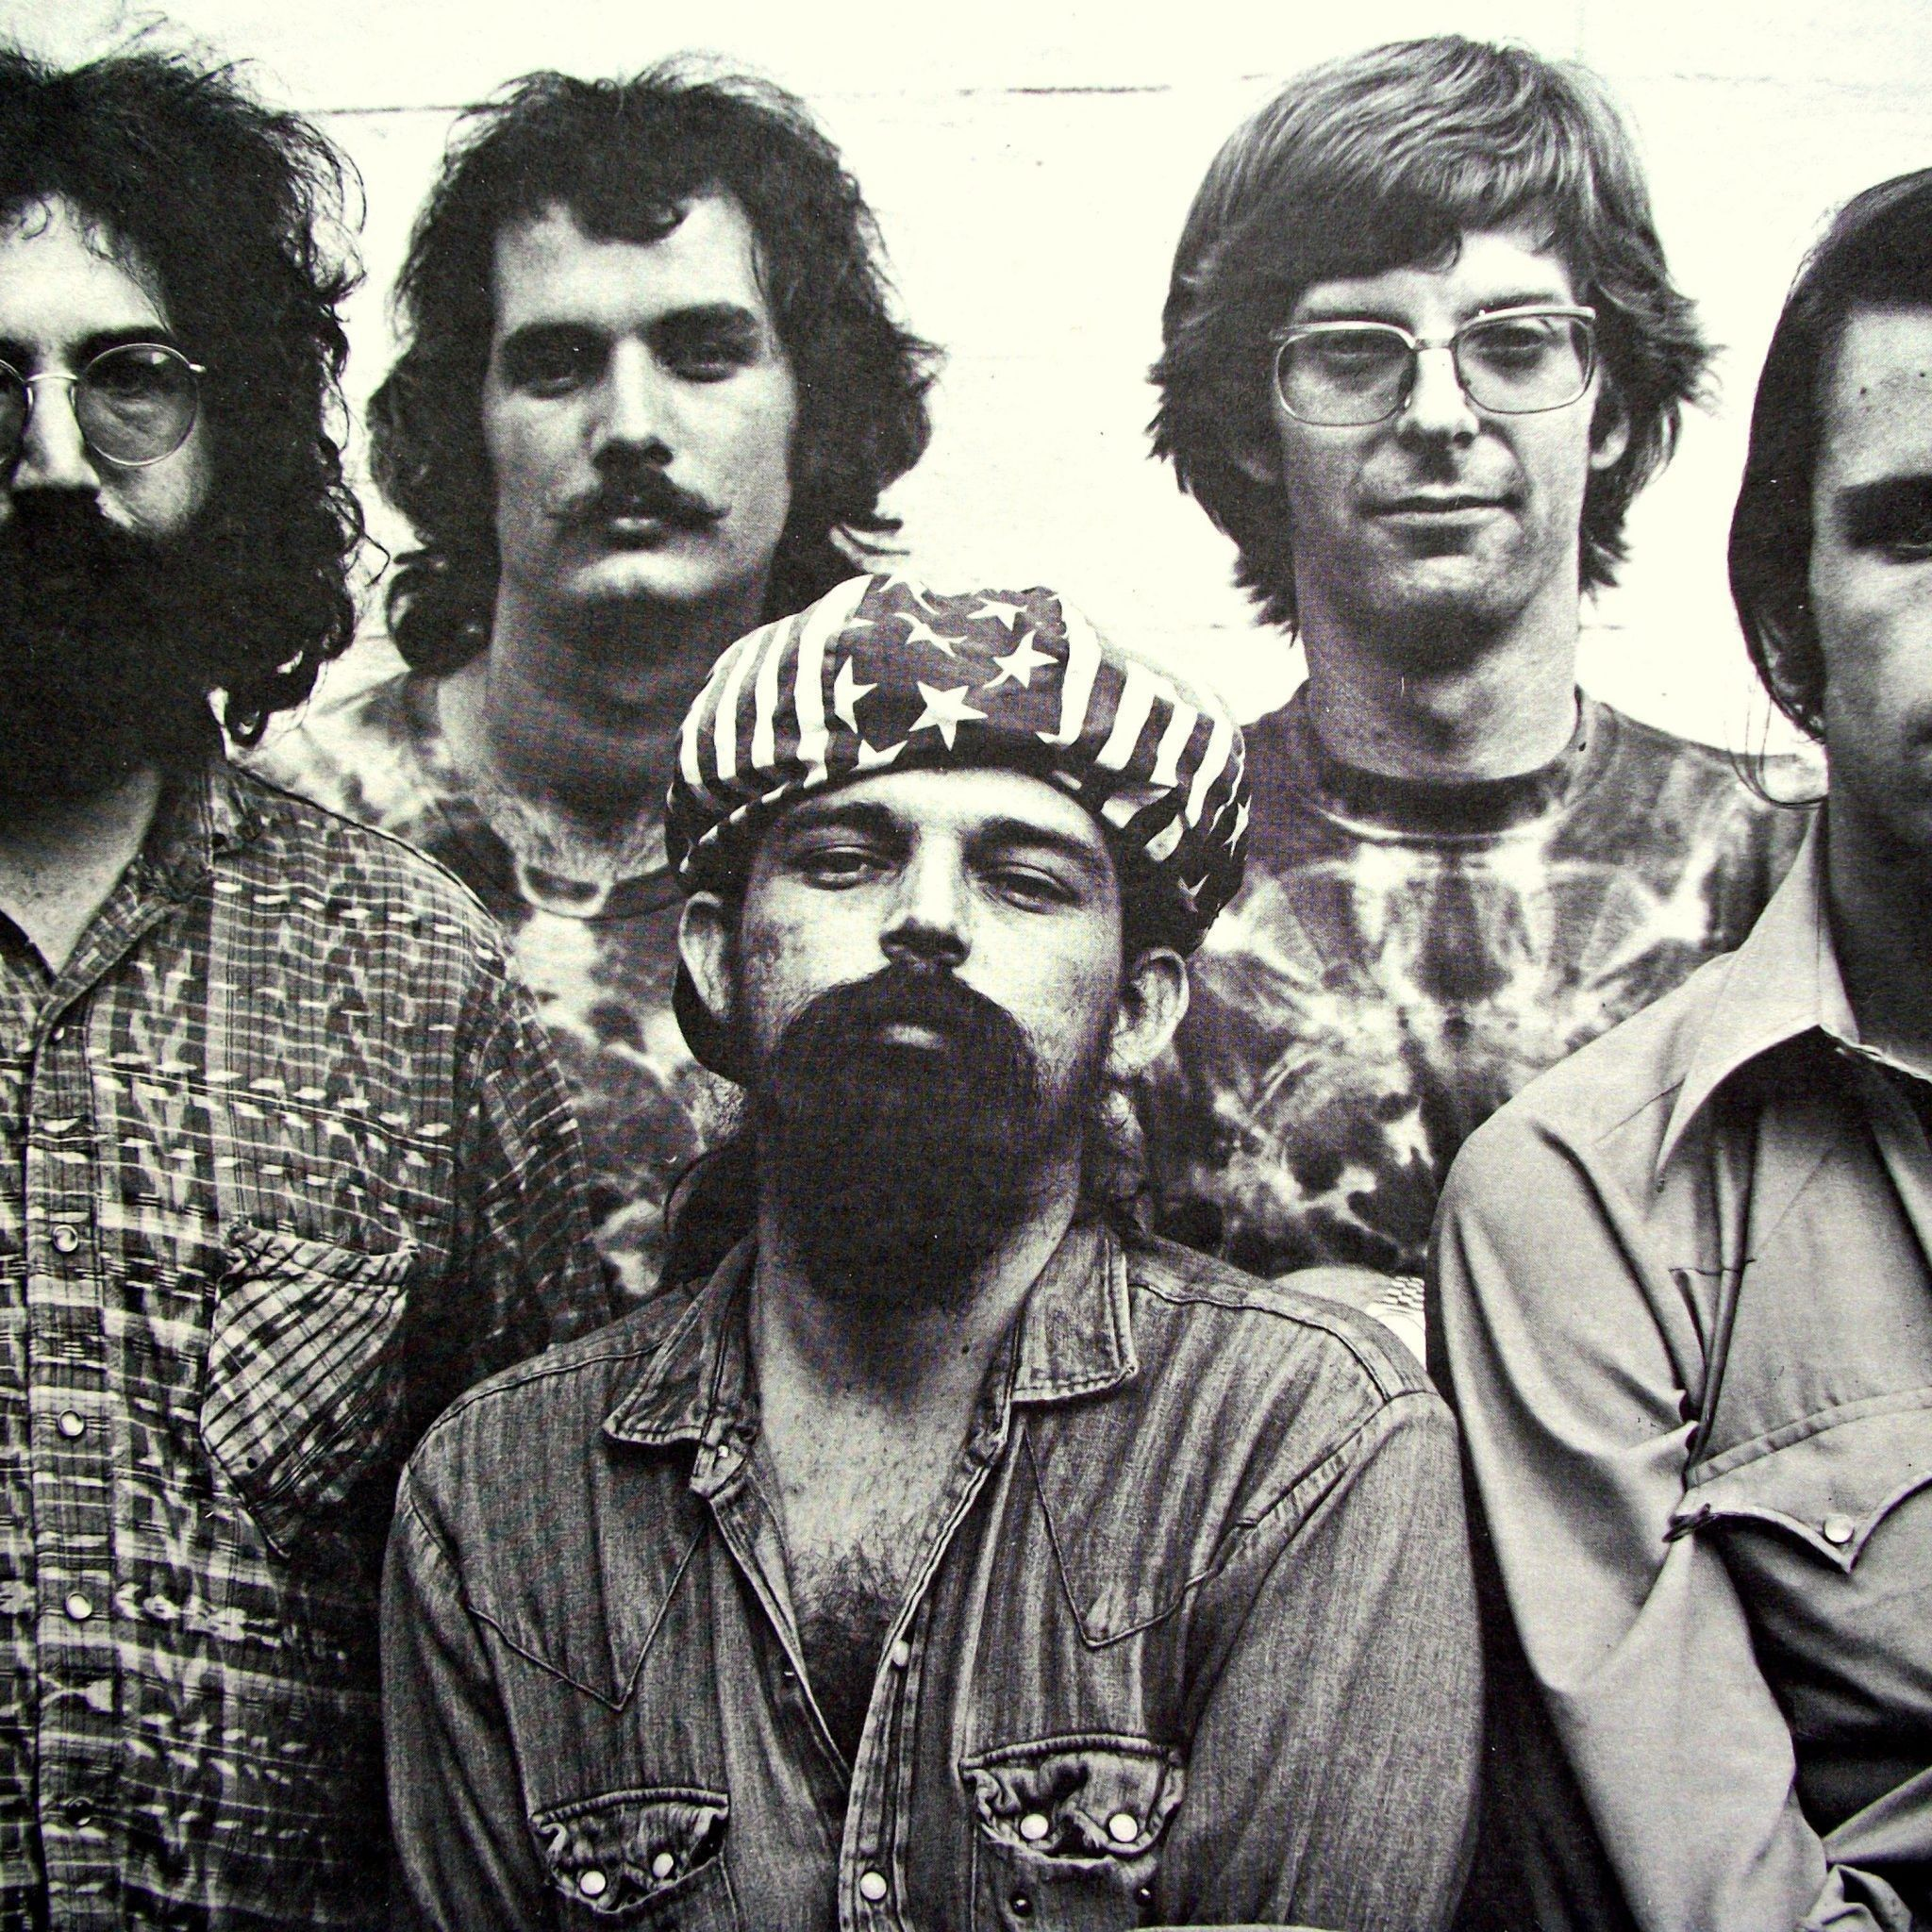 647 best Grateful Dead images on Pinterest Grateful dead, The Photos of the grateful dead